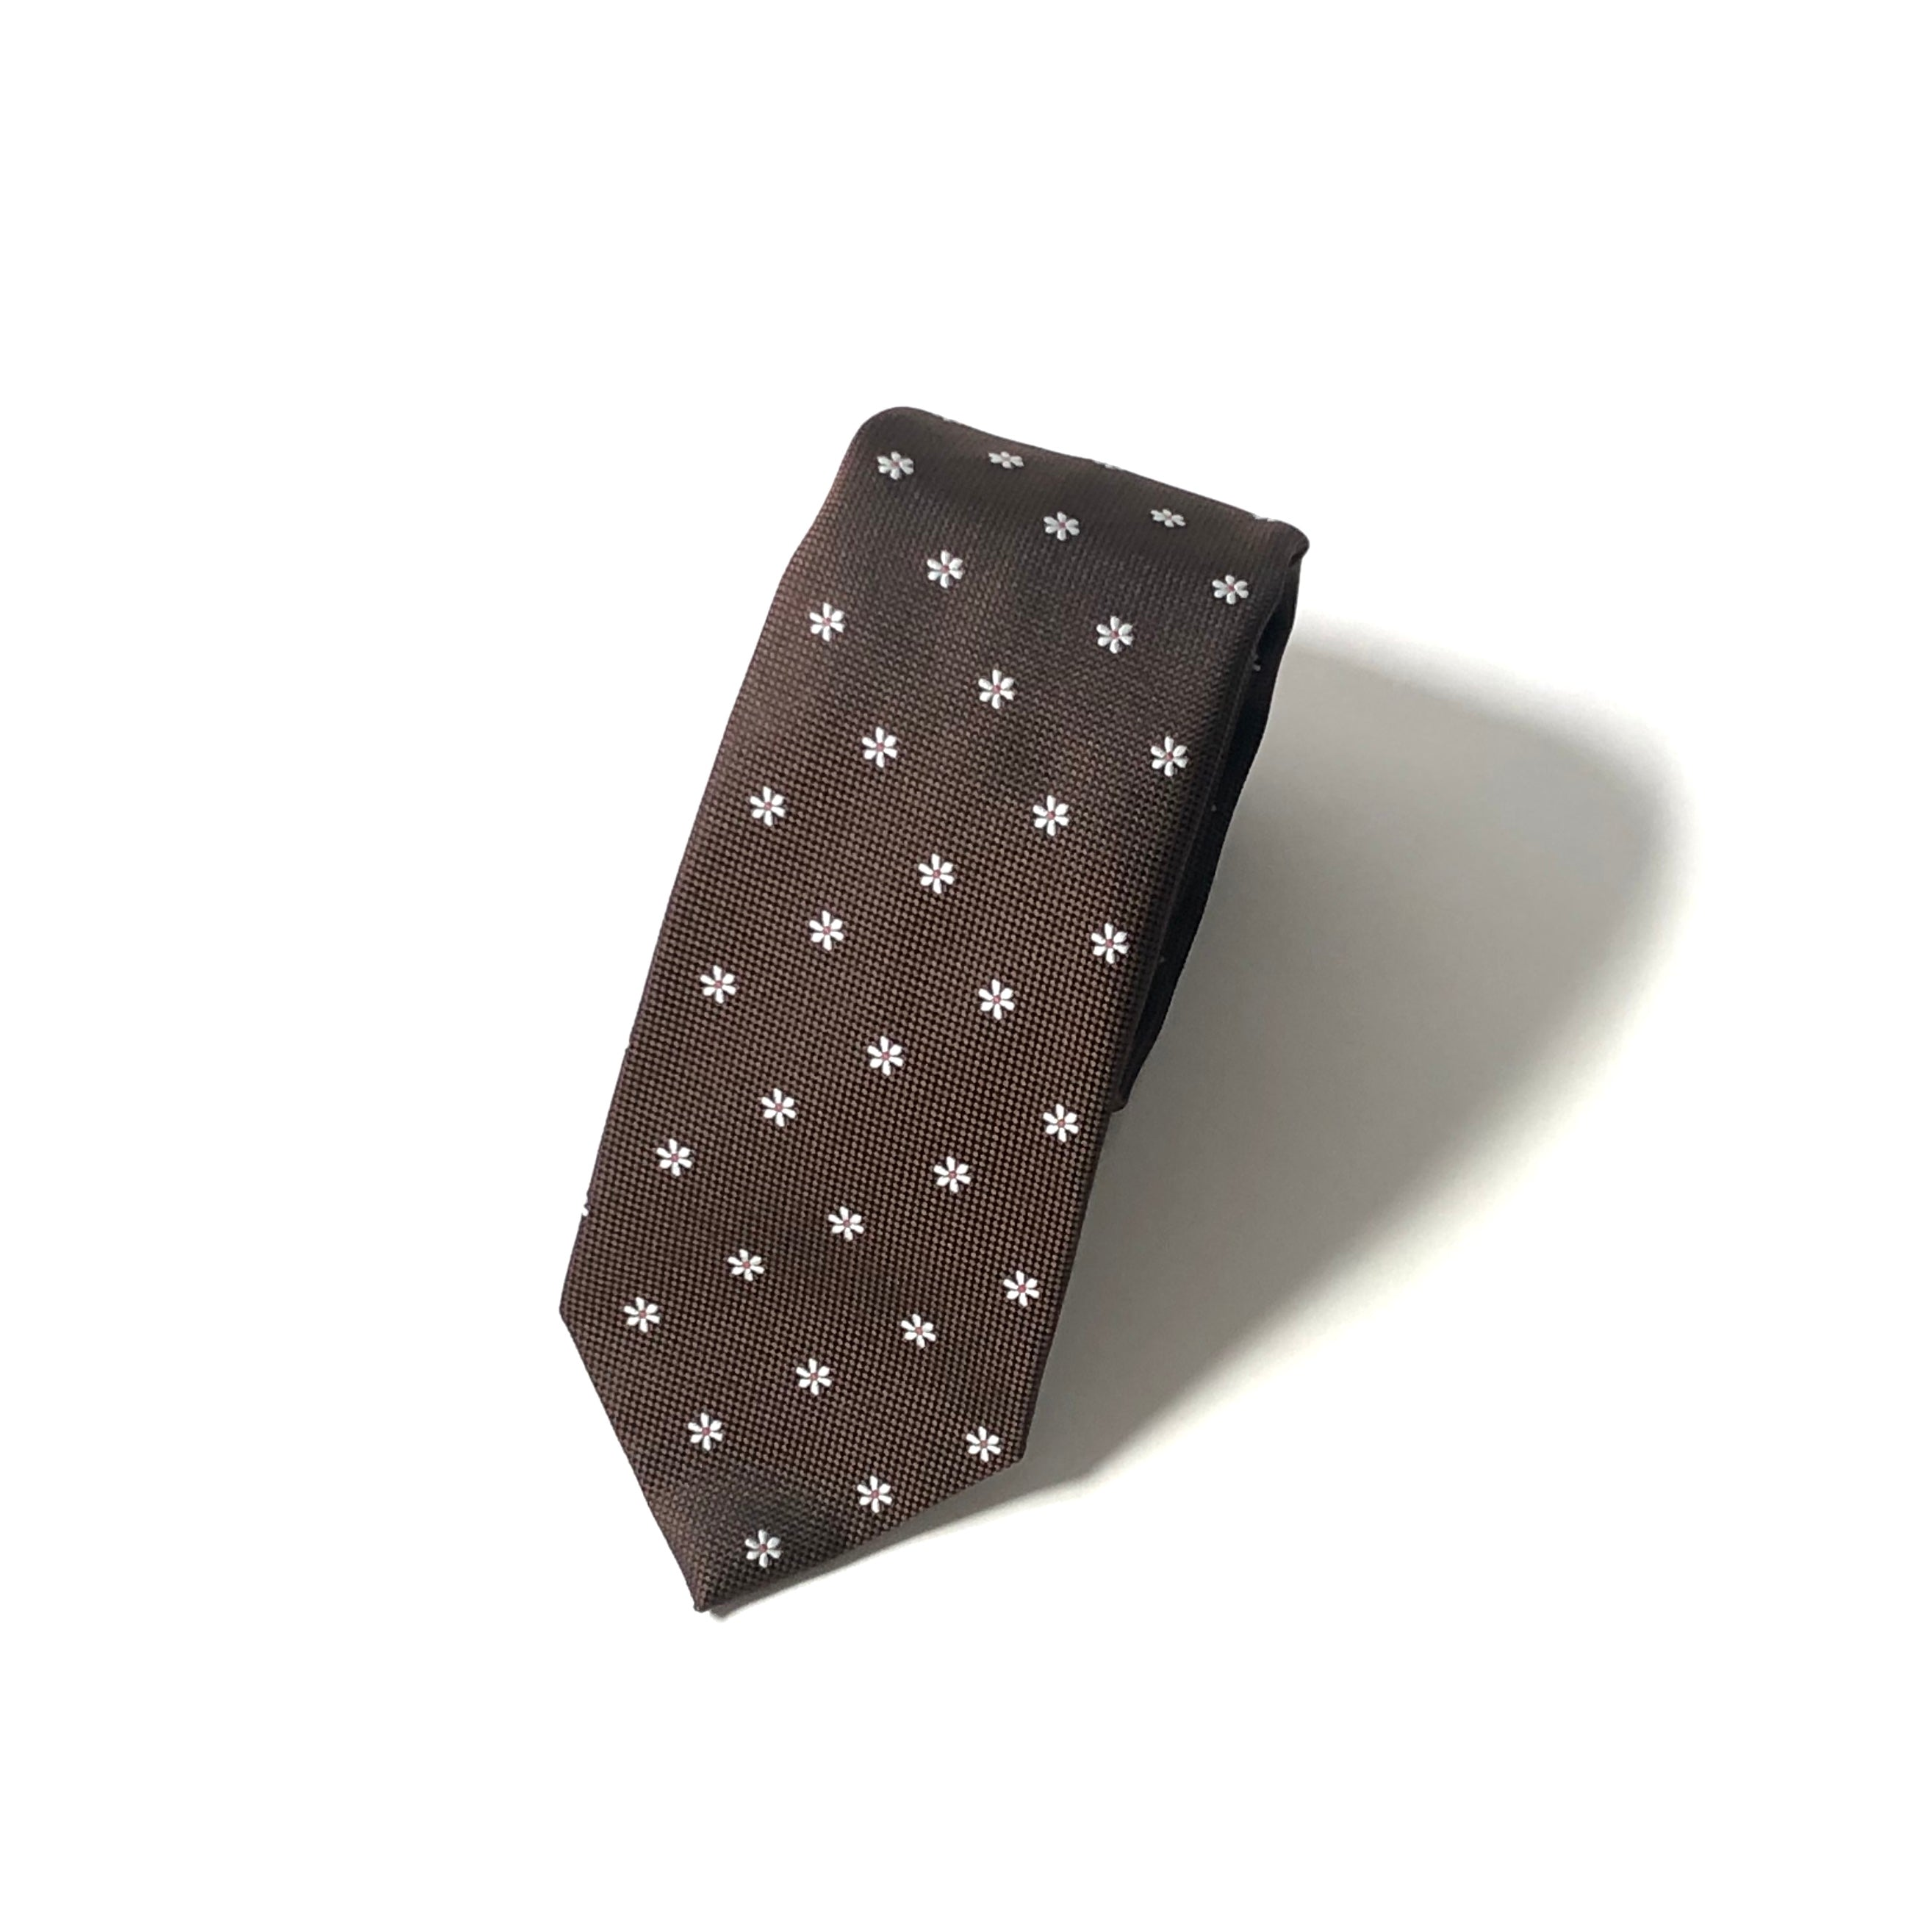 KYOTO WASHABLE KOMON TIE E